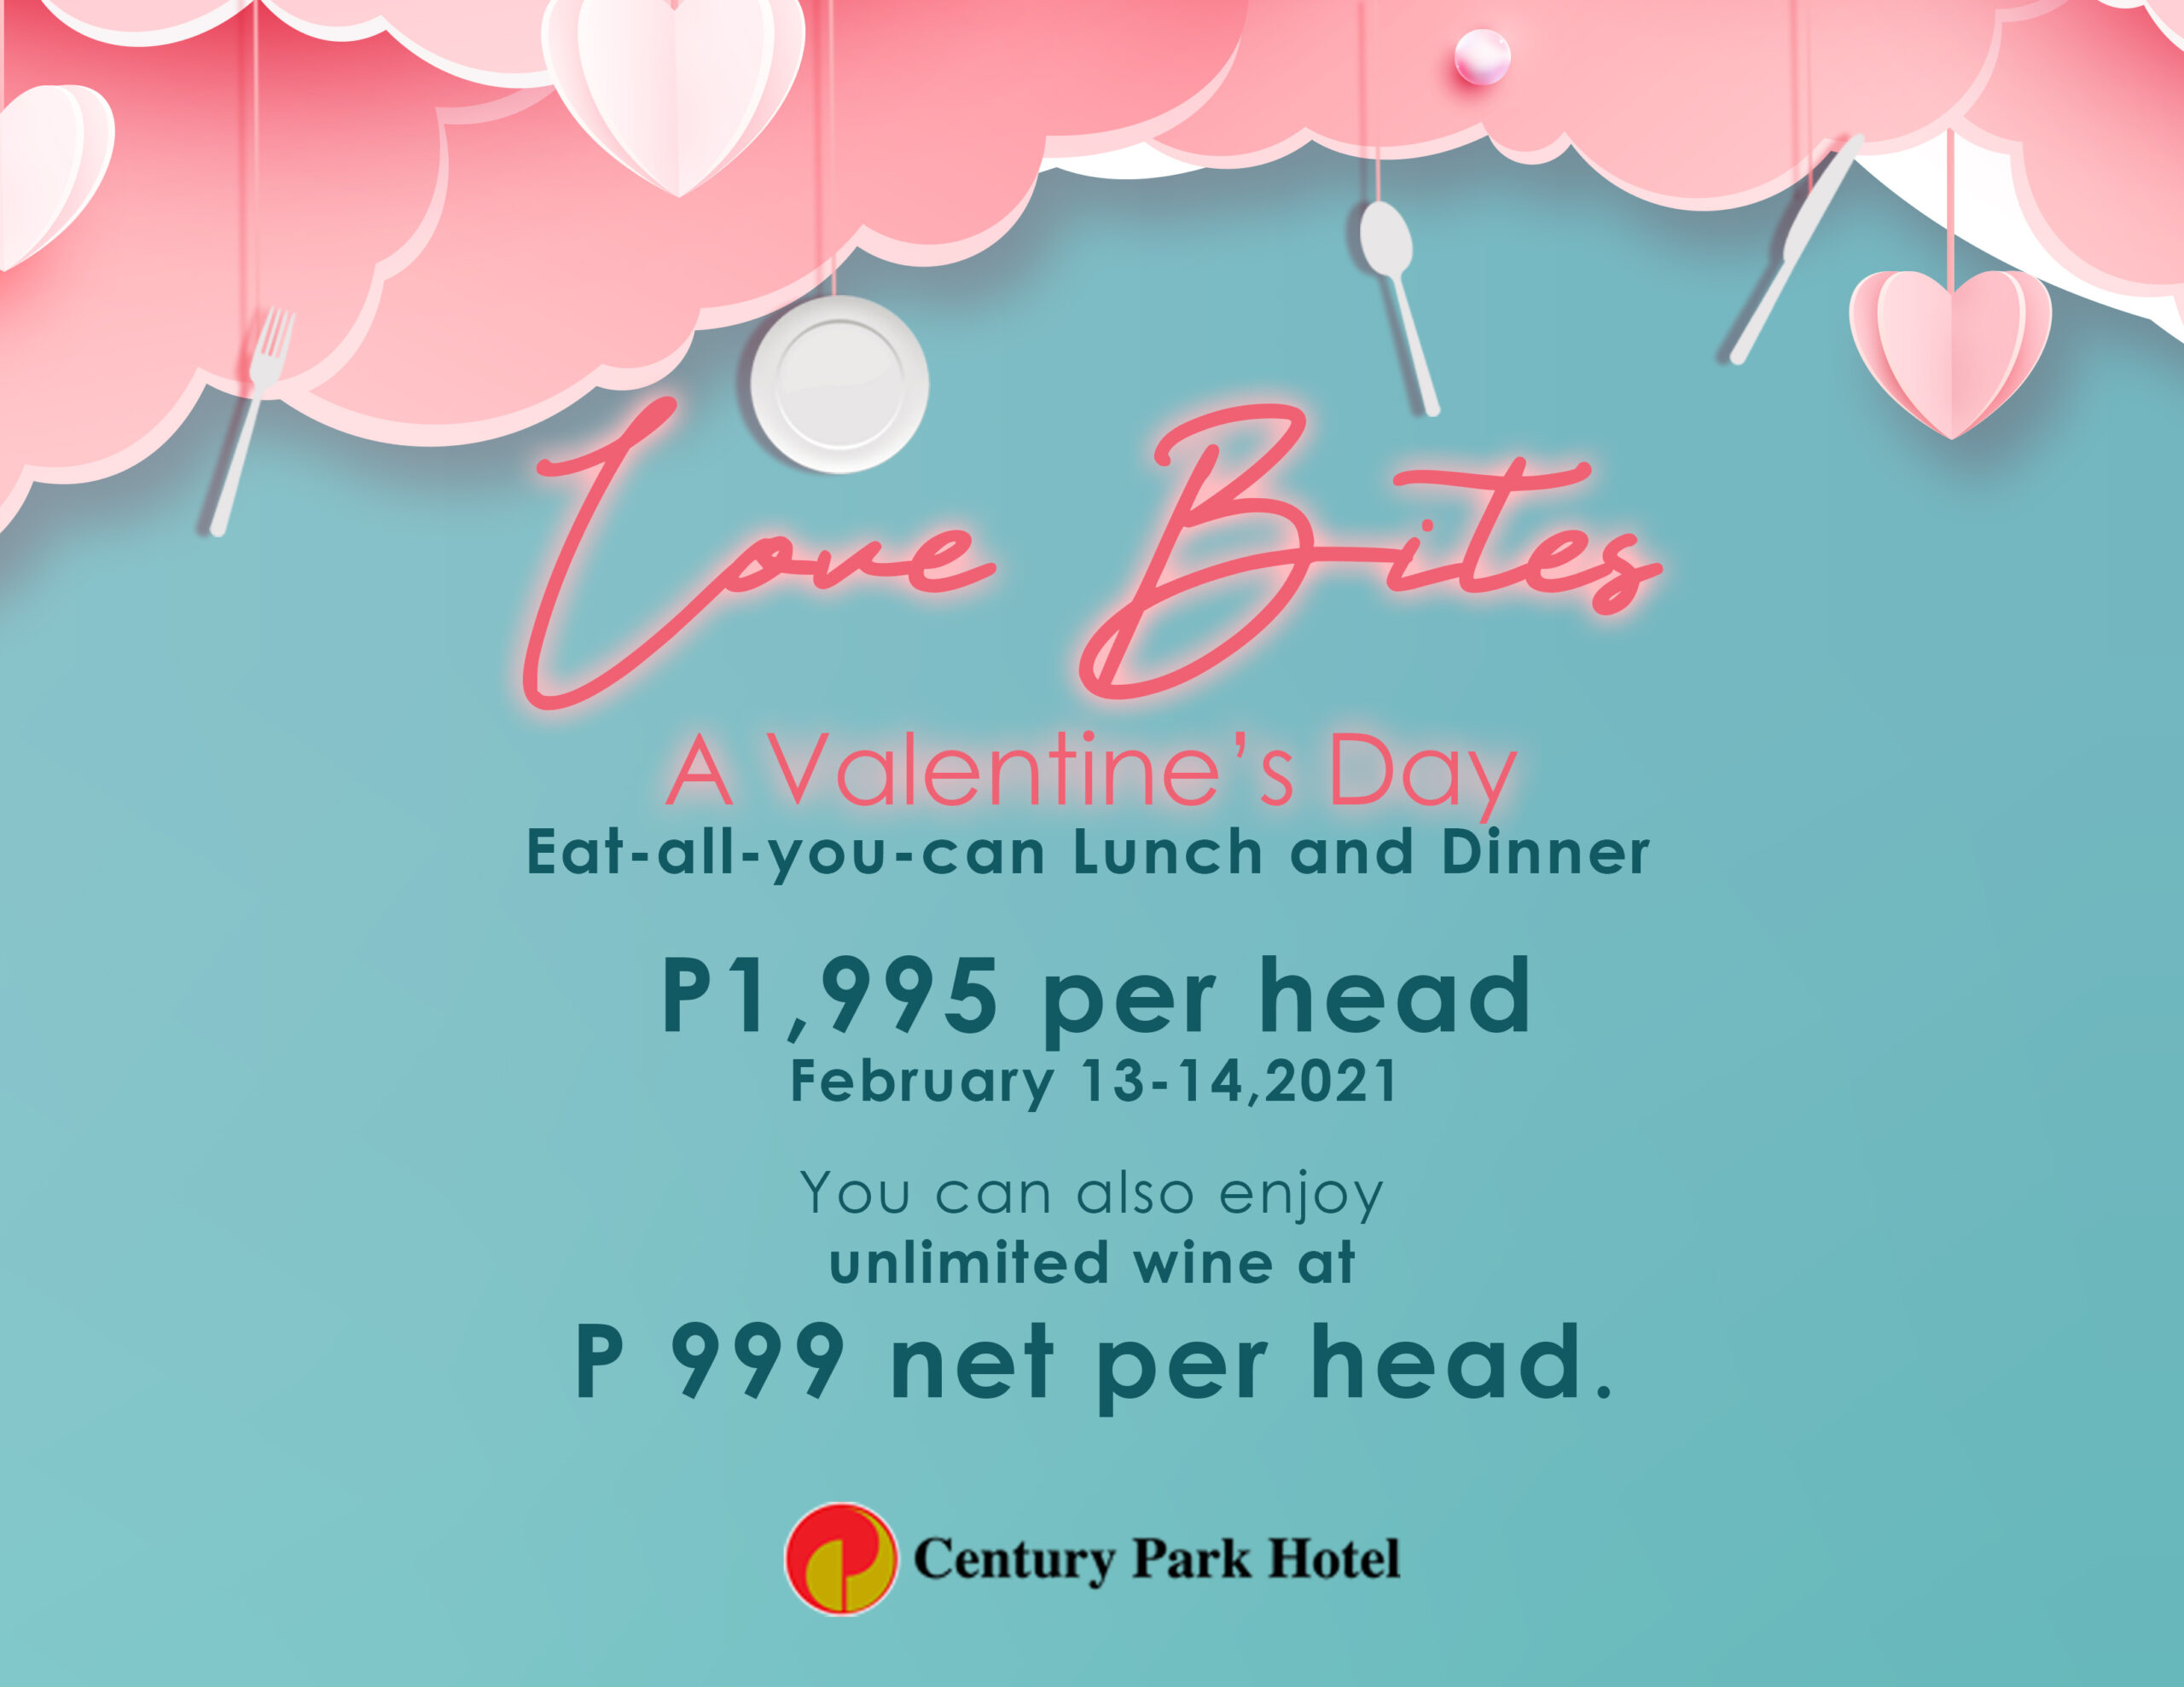 Take Your Loved One on a Lavish Valentine's Date at Century Park Hotel